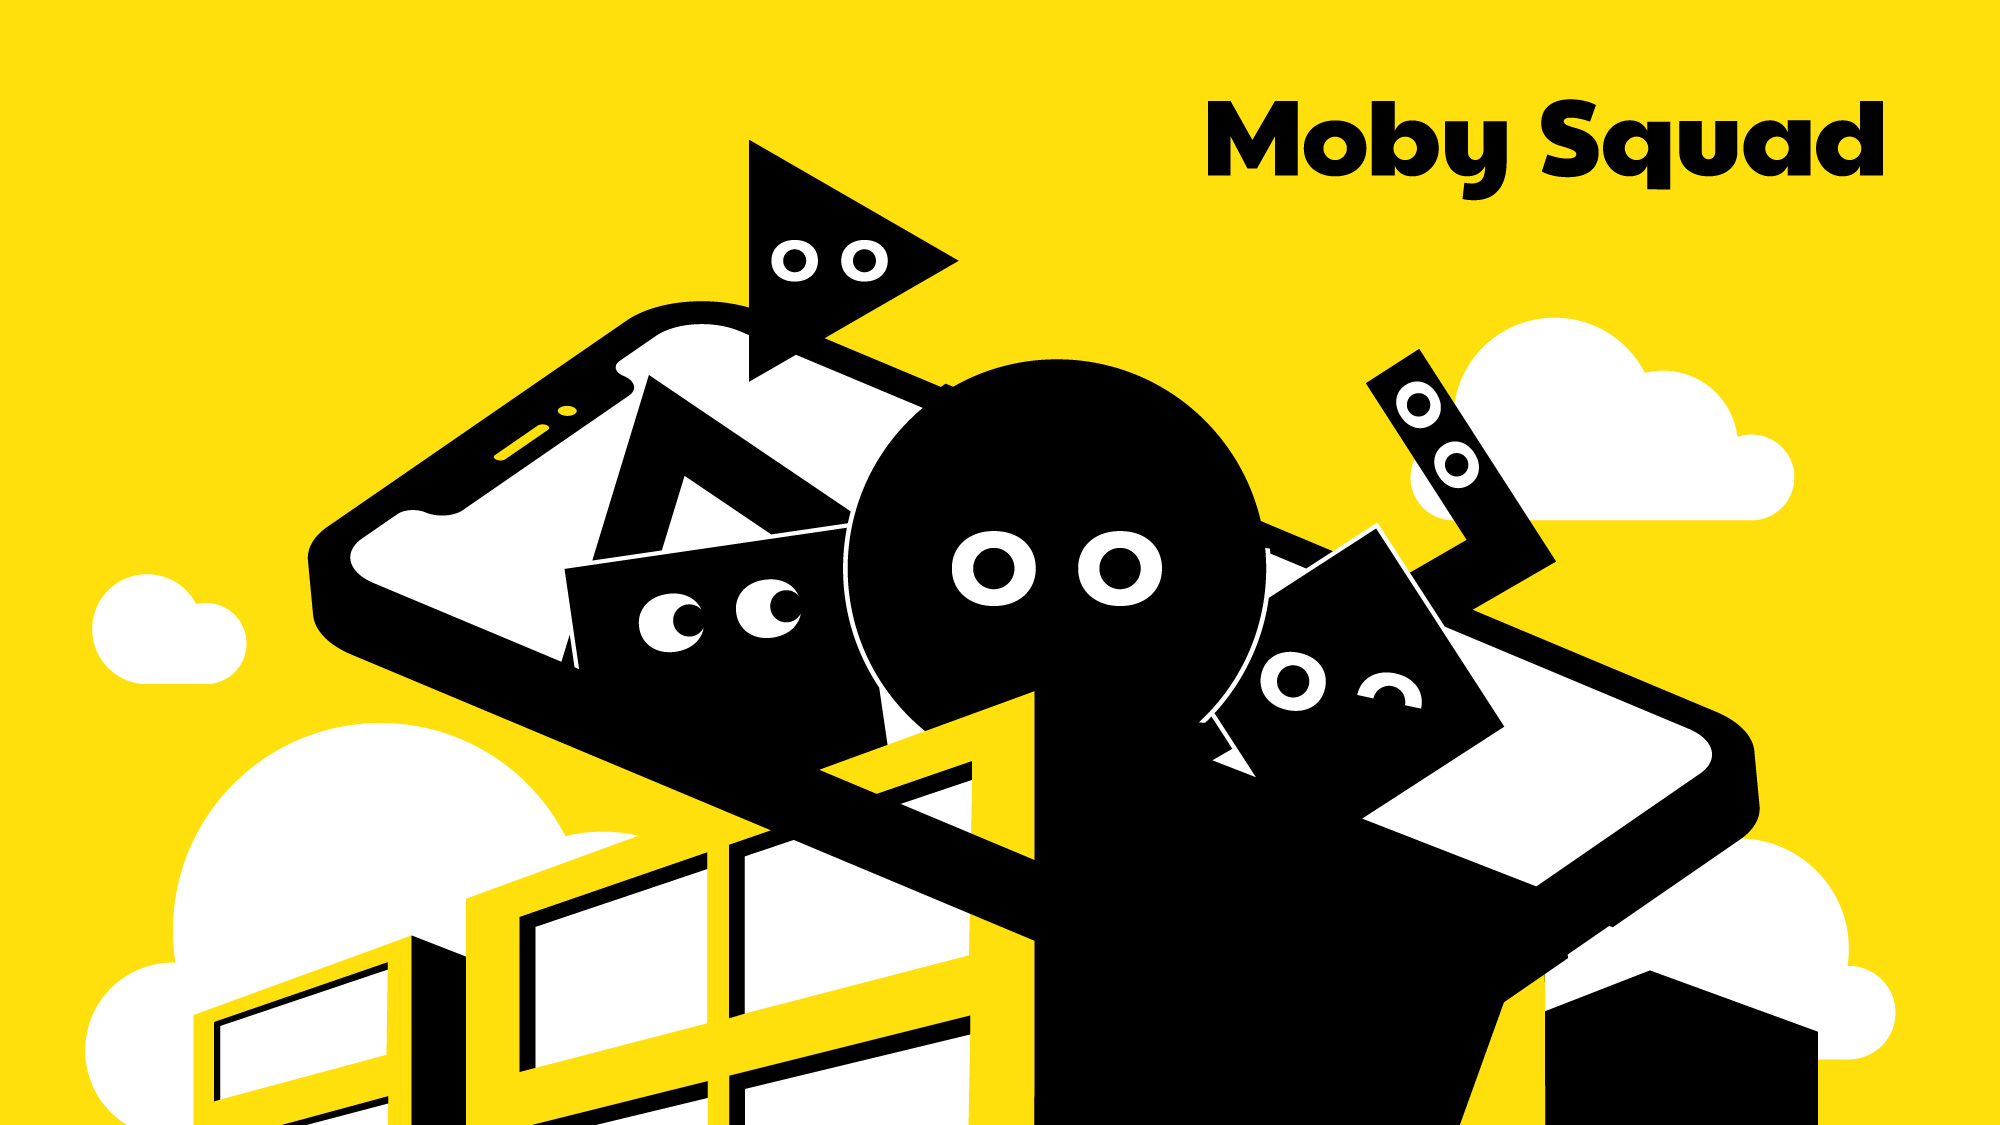 Moby Squad